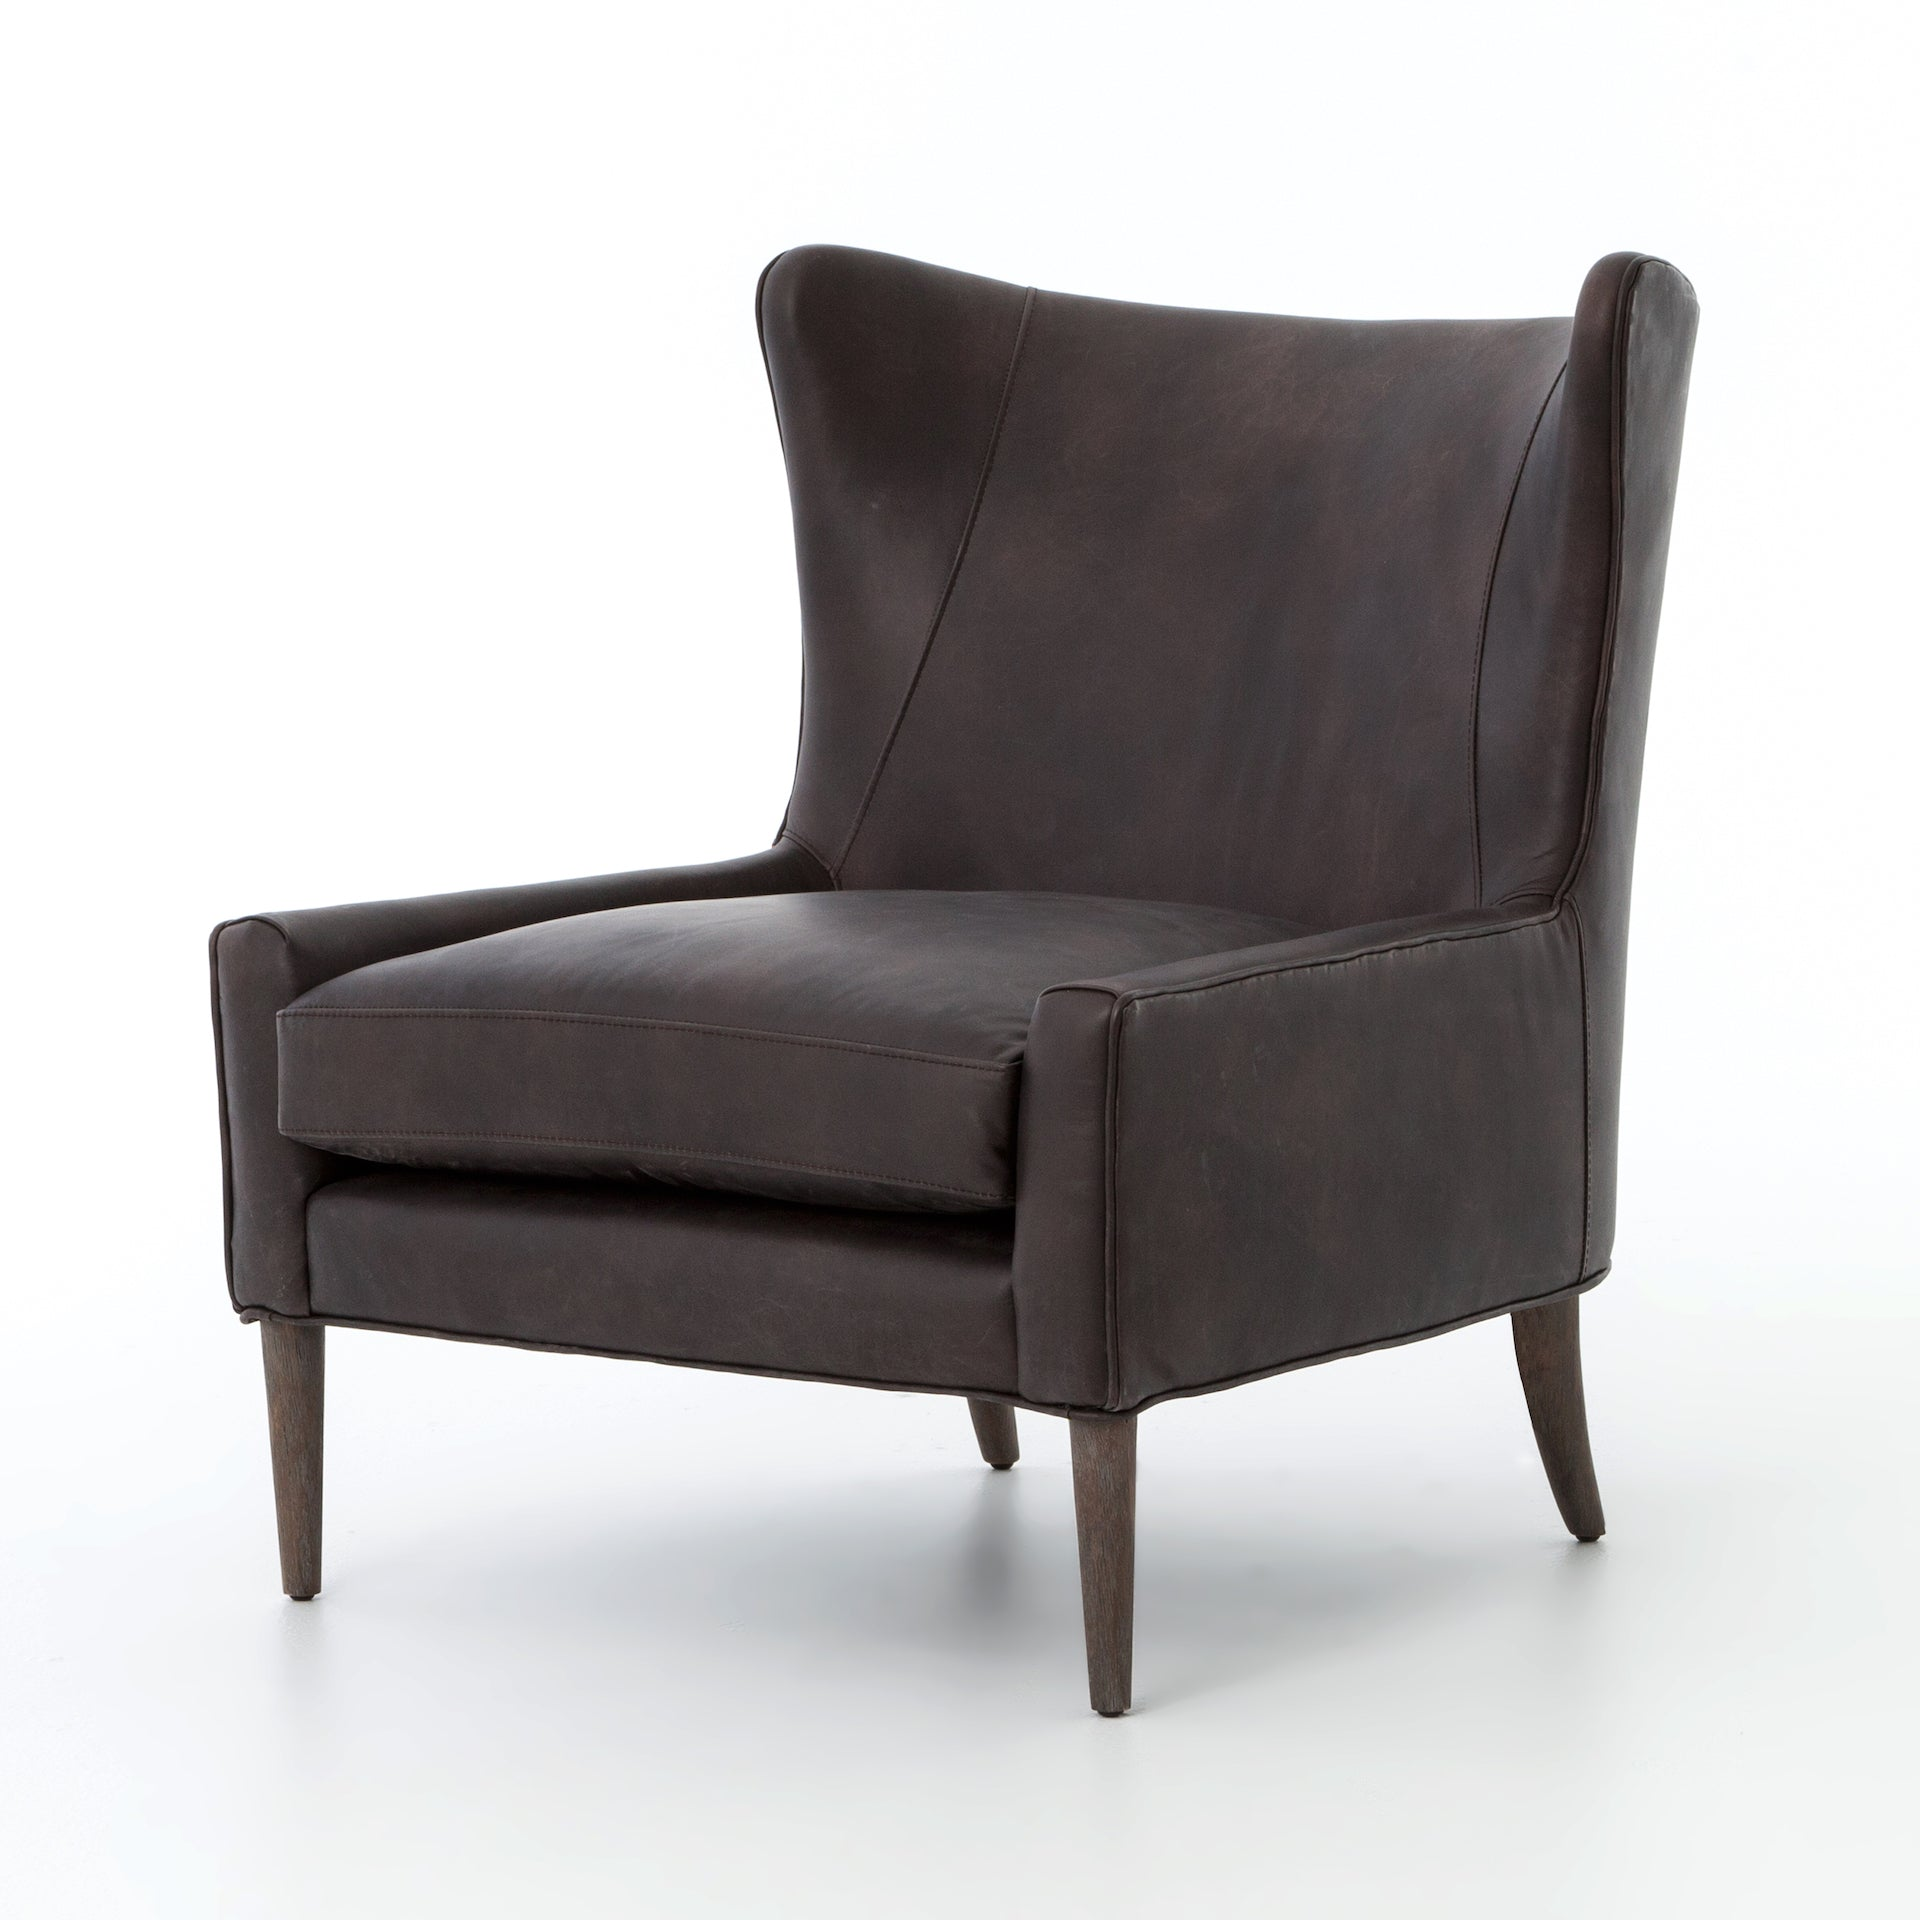 Four Hands Marlow Wing Chair at Downtown Decor at Downtown Decor in Las Vegas